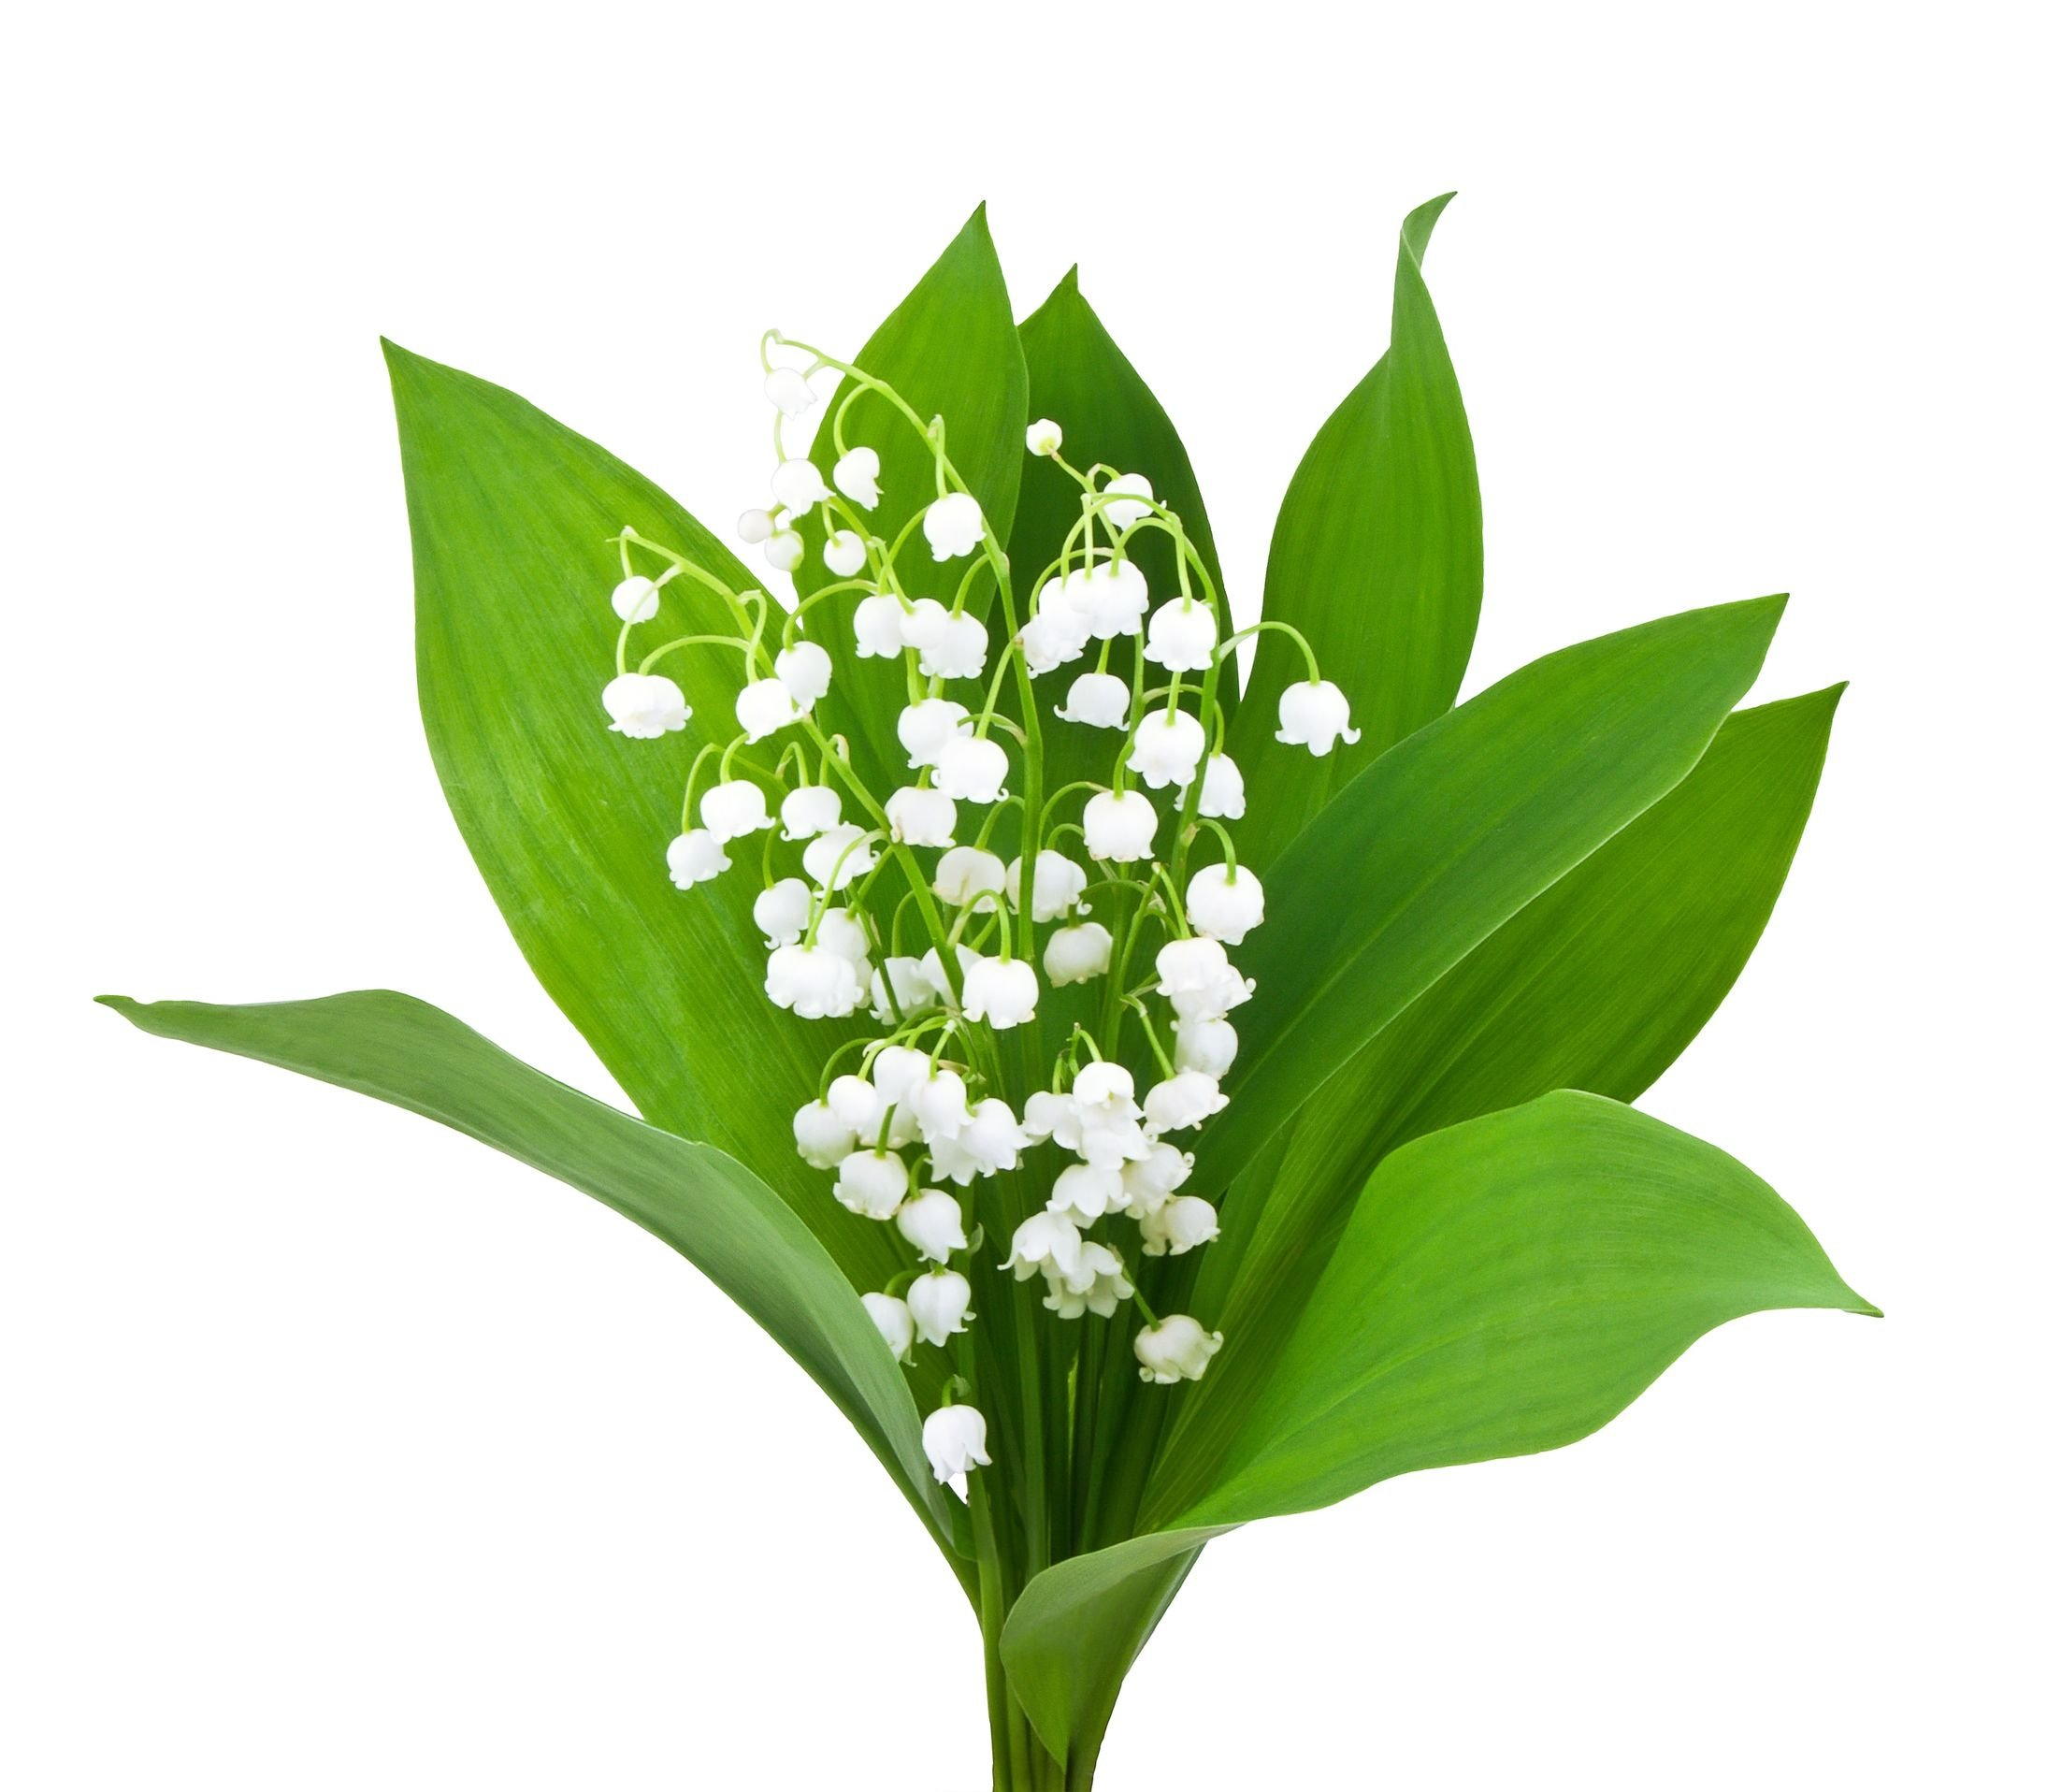 Special Sale - 10 Very Large, Plump Lily of The Valley Plant Pips Bare Root Fresh from Holland - Eager to Bloom in May! by Marde Ross & Company (Image #1)